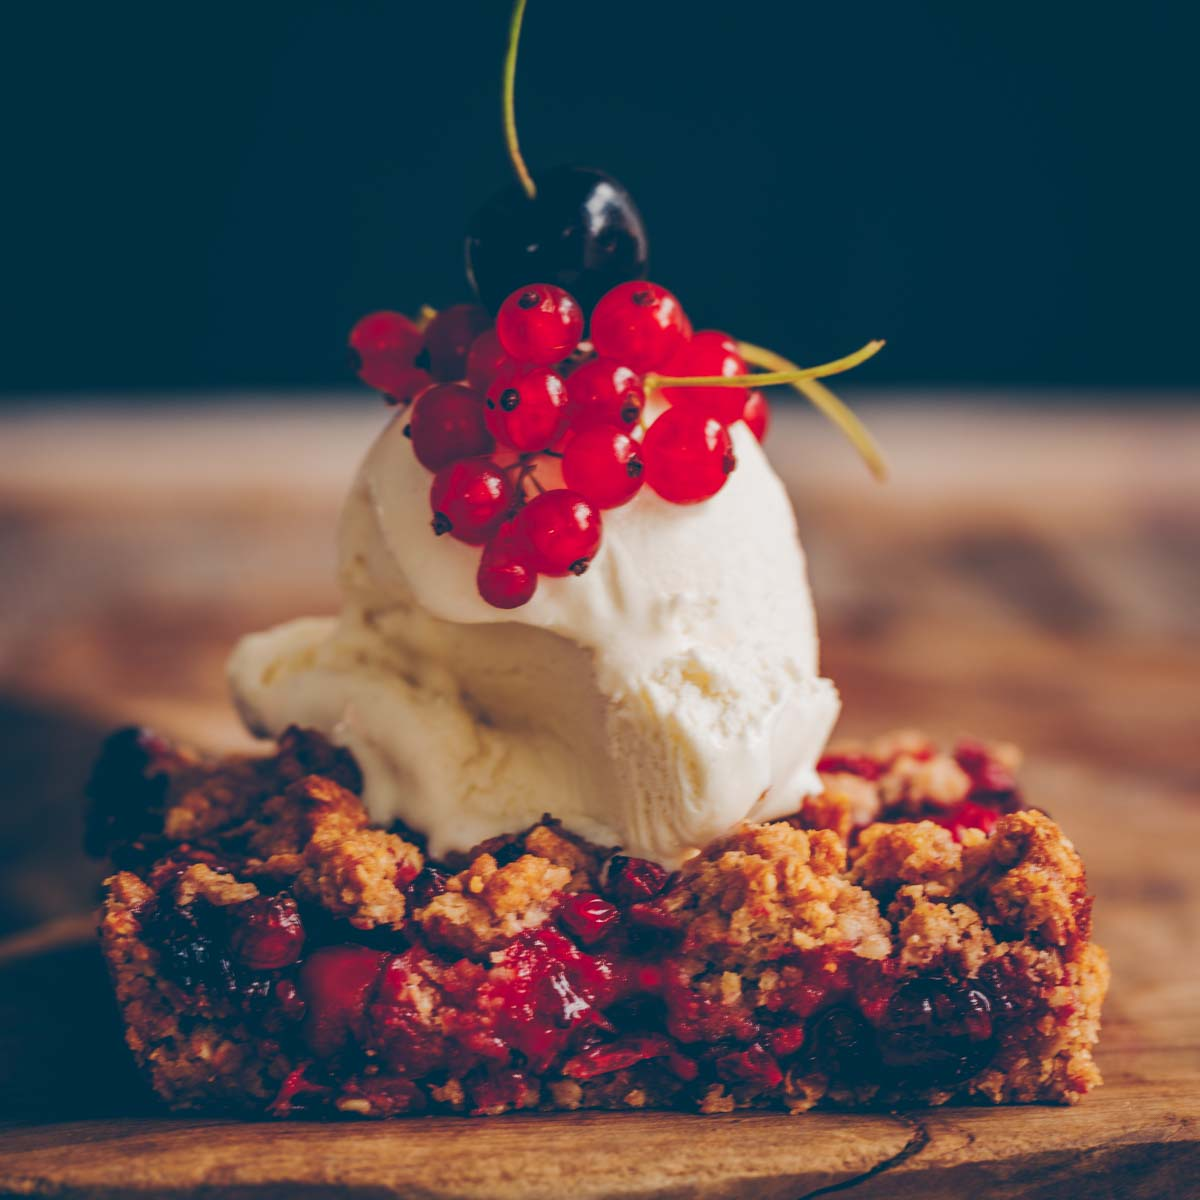 Vegan berry crumble